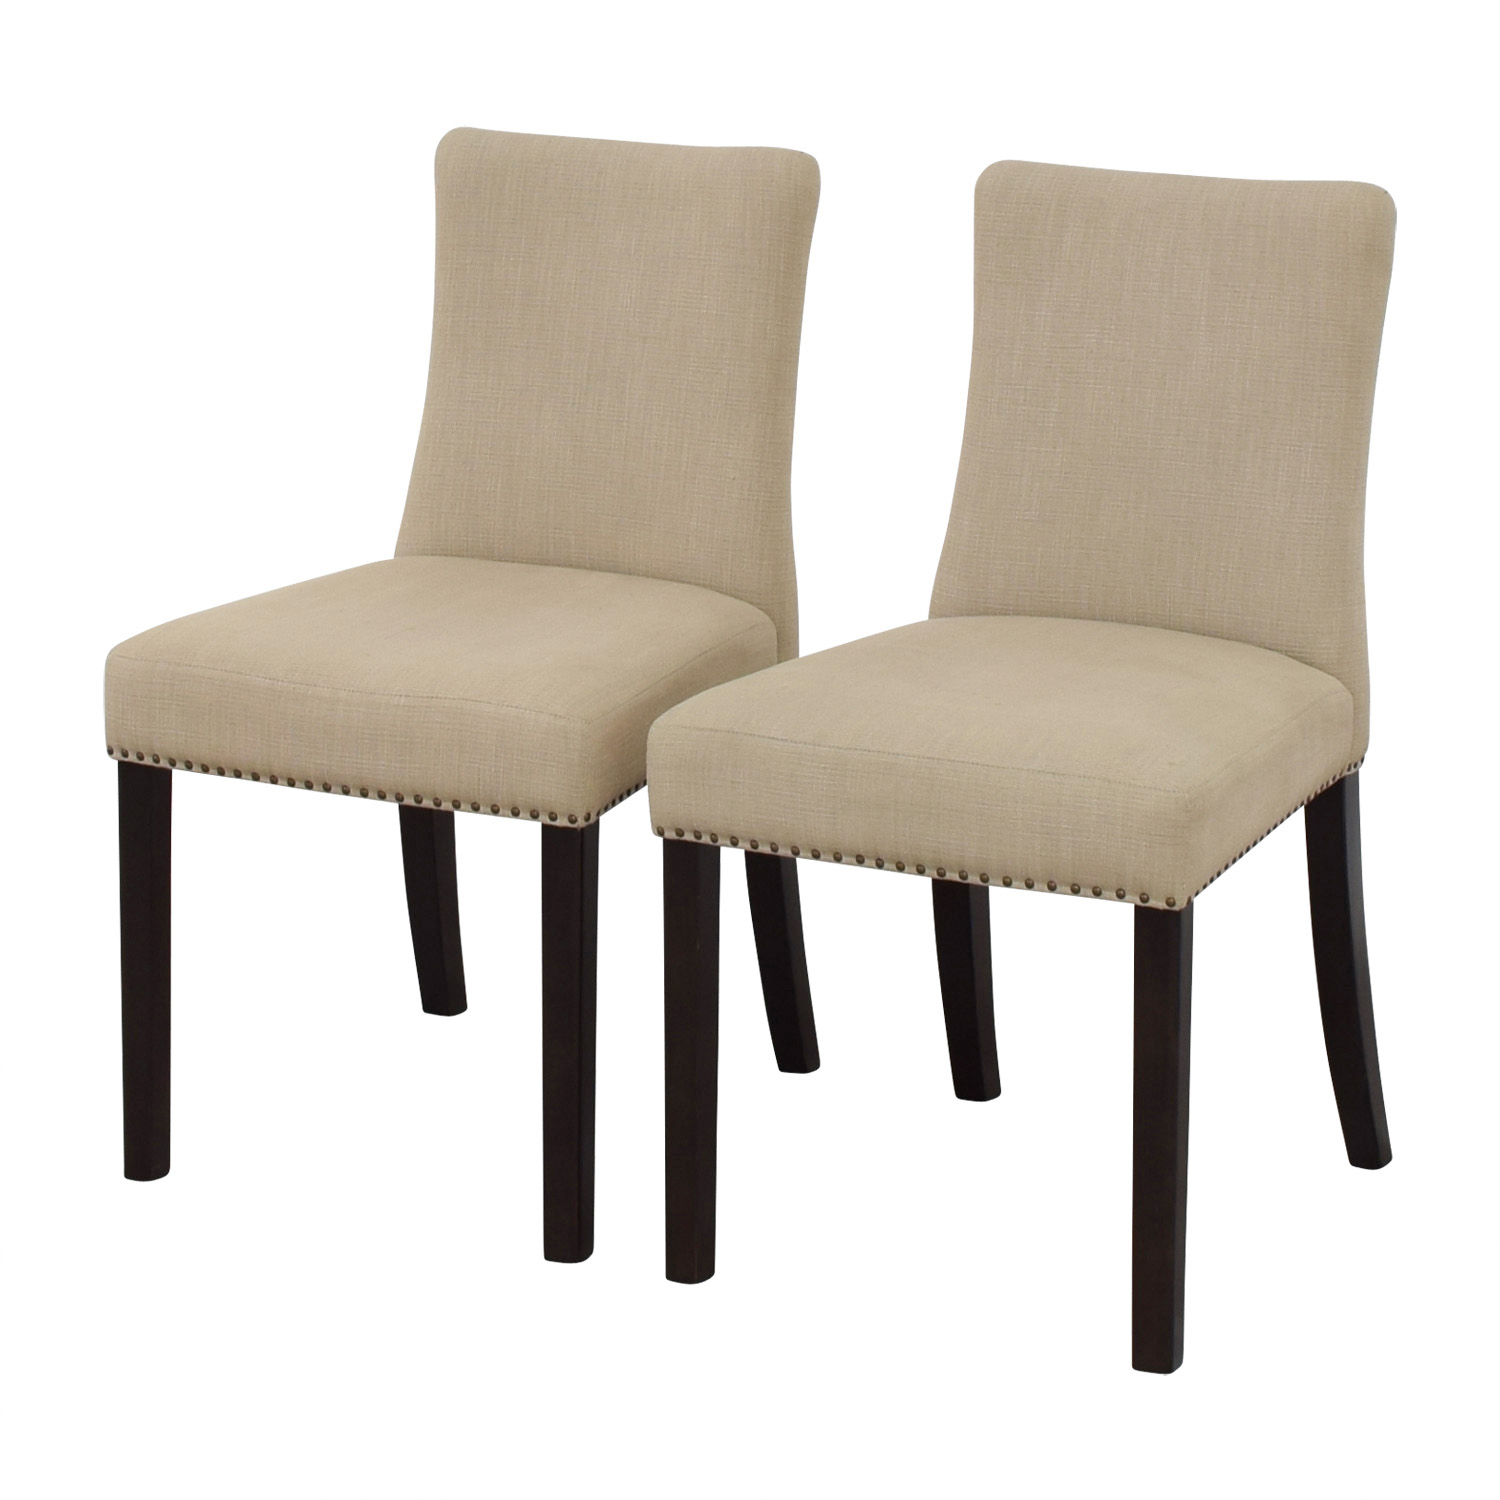 West Elm West Elm Tan Fabric Nailhead Side Chairs nyc